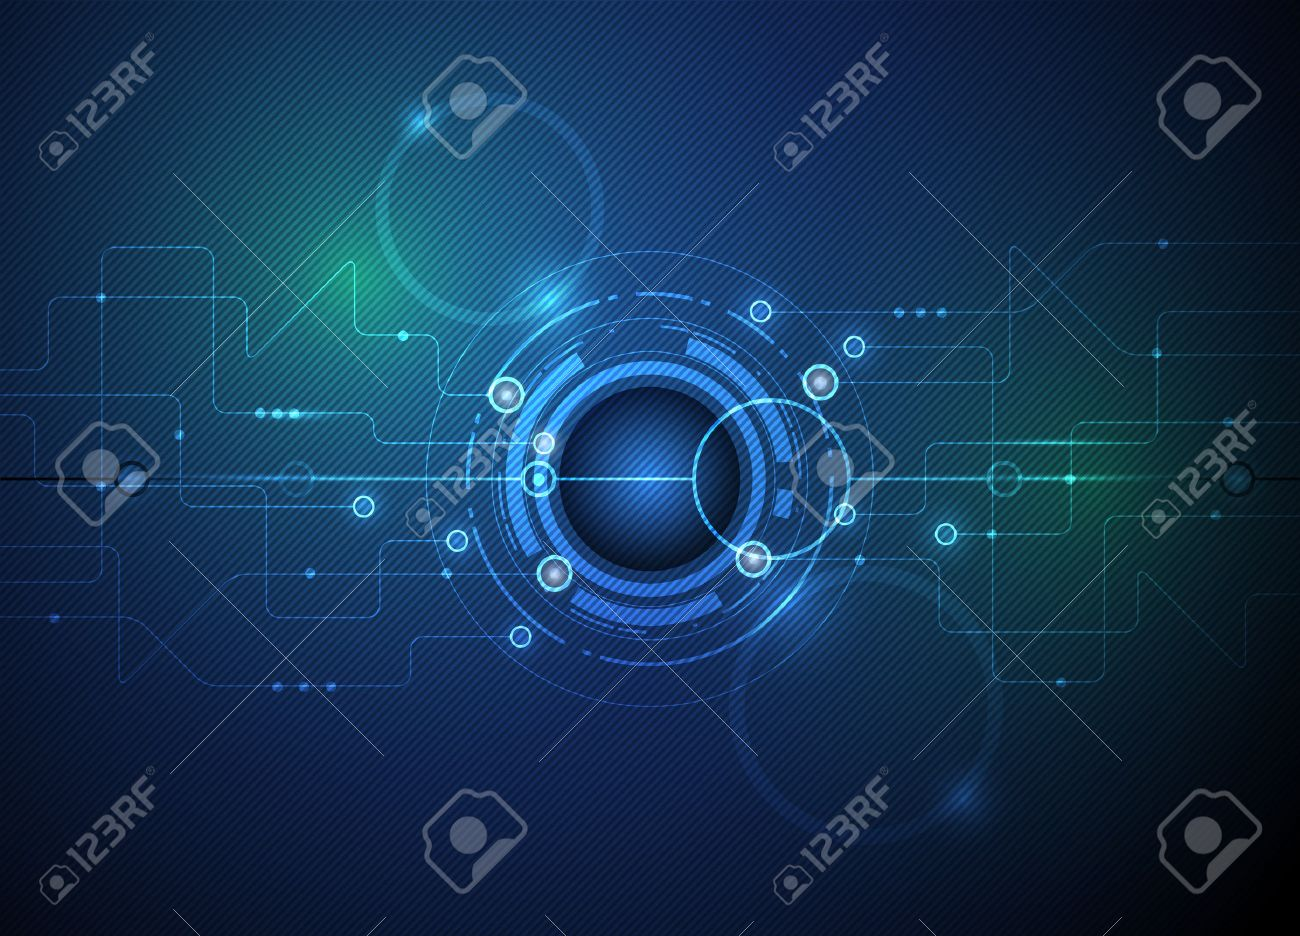 Vector illustration Abstract futuristic eyeball on circuit board, high computer technology green and blue color background - 42341676